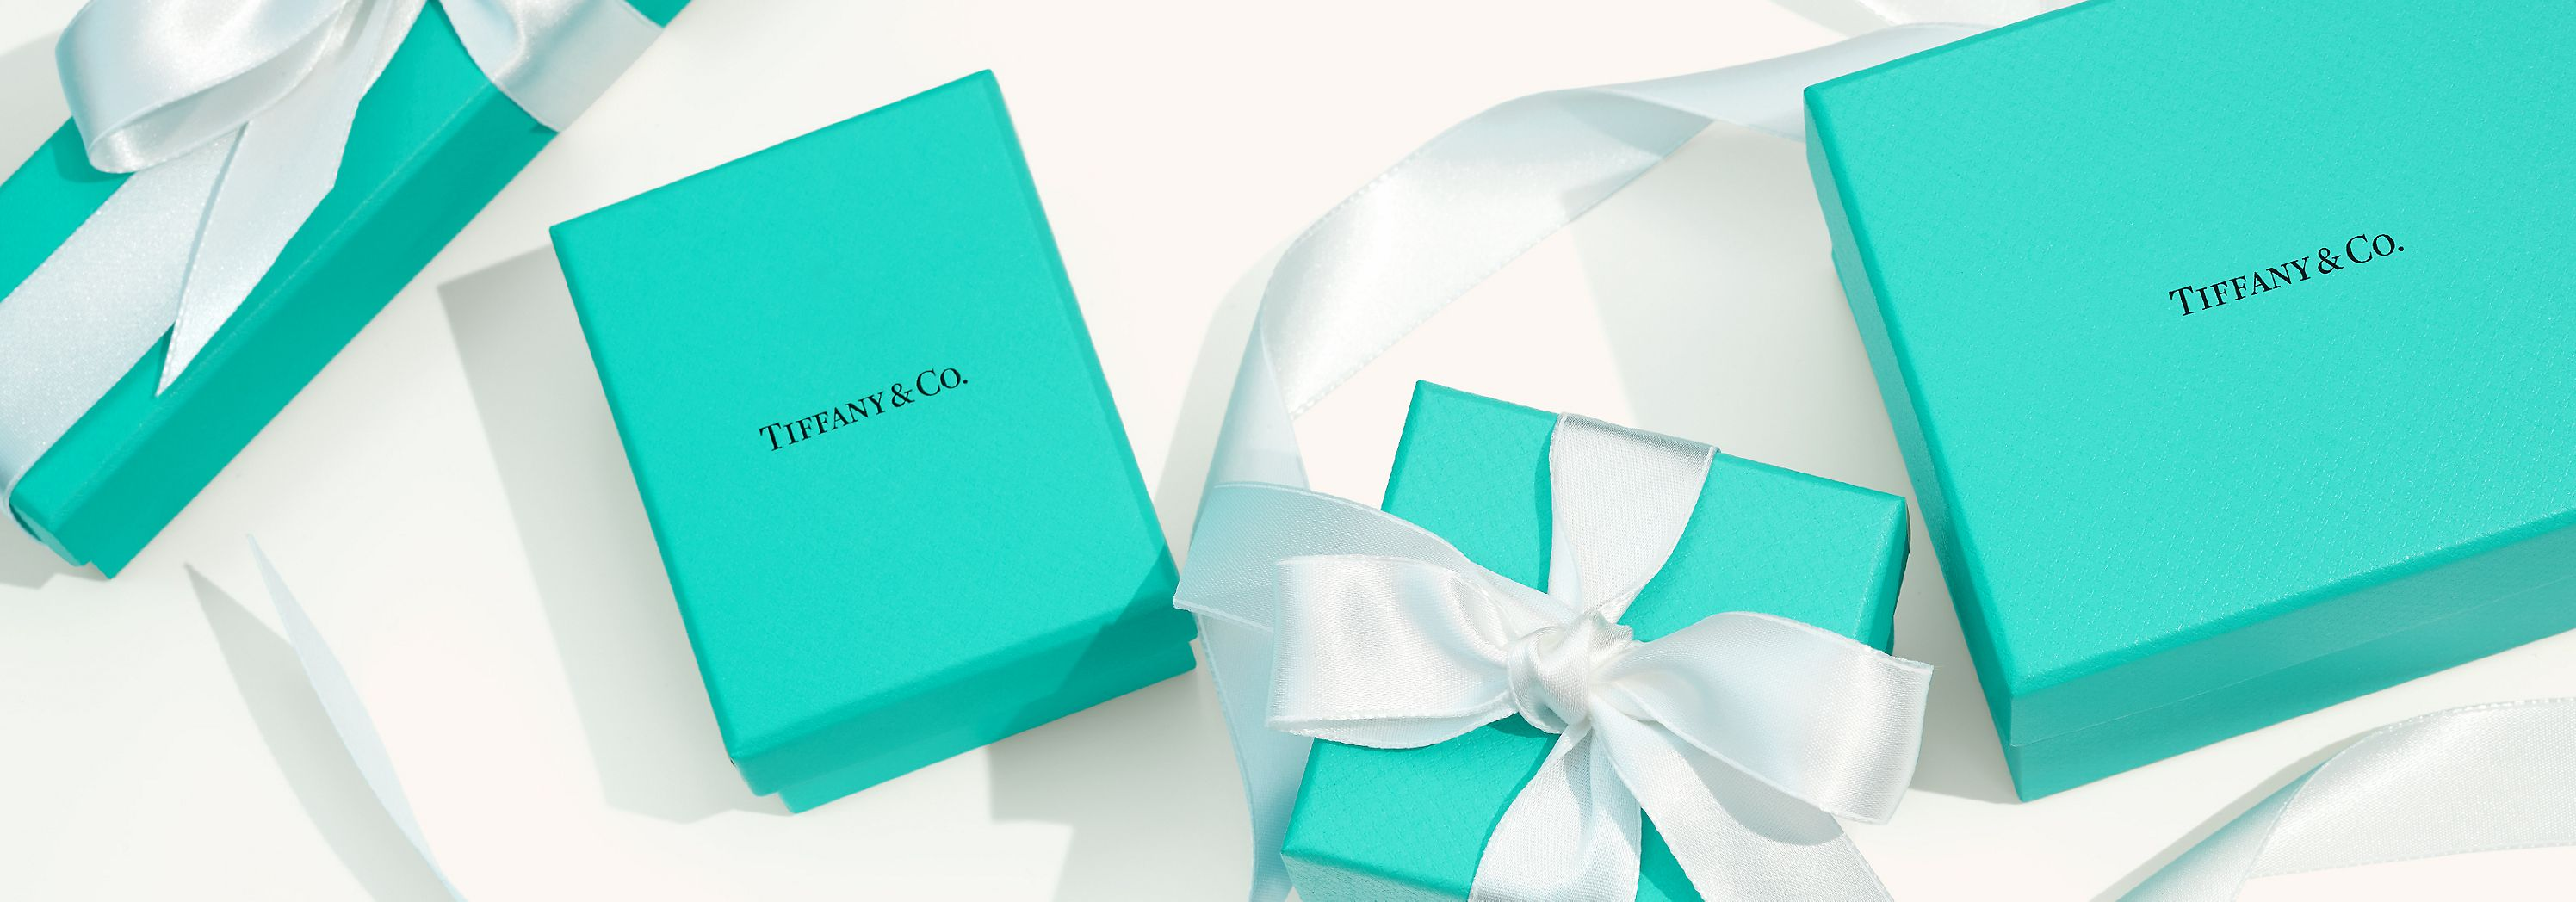 The World Of Tiffany Co